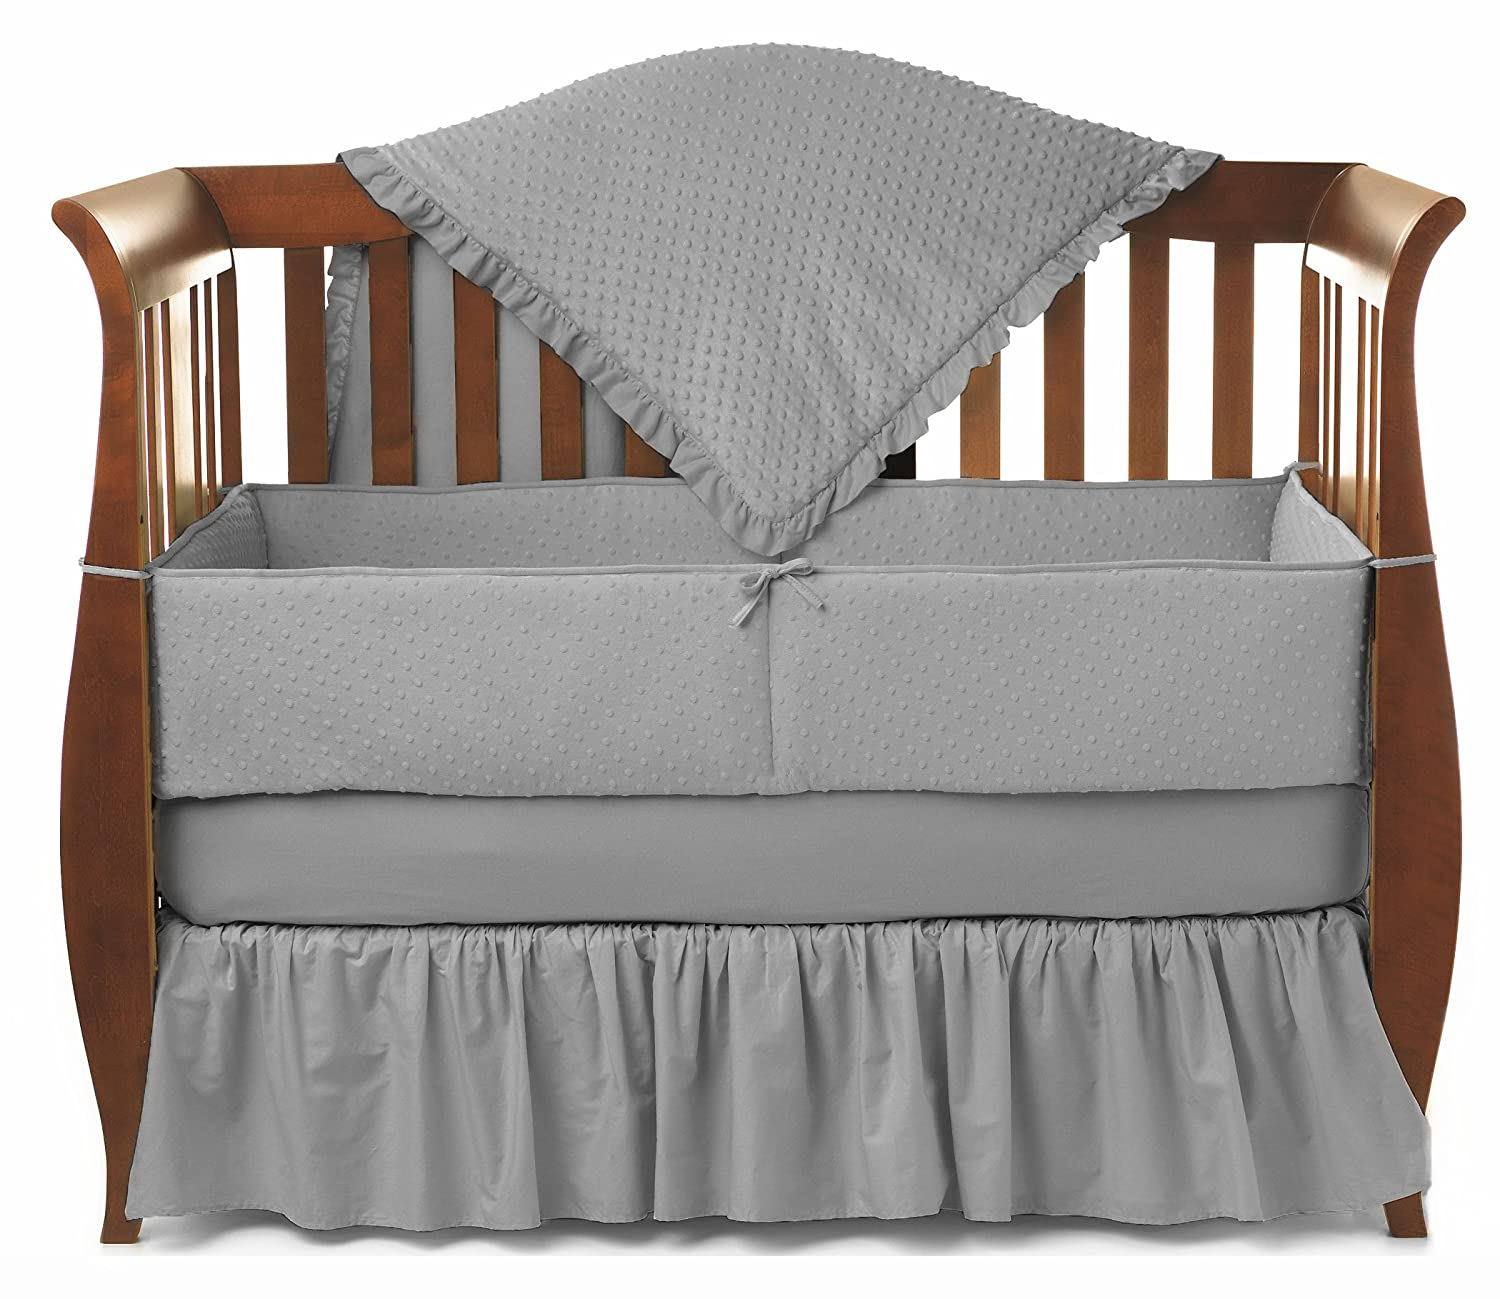 TL Care Heavenly Soft Minky Dot 4 Piece Crib Set, Gray by TL Care   B0199GE5AG